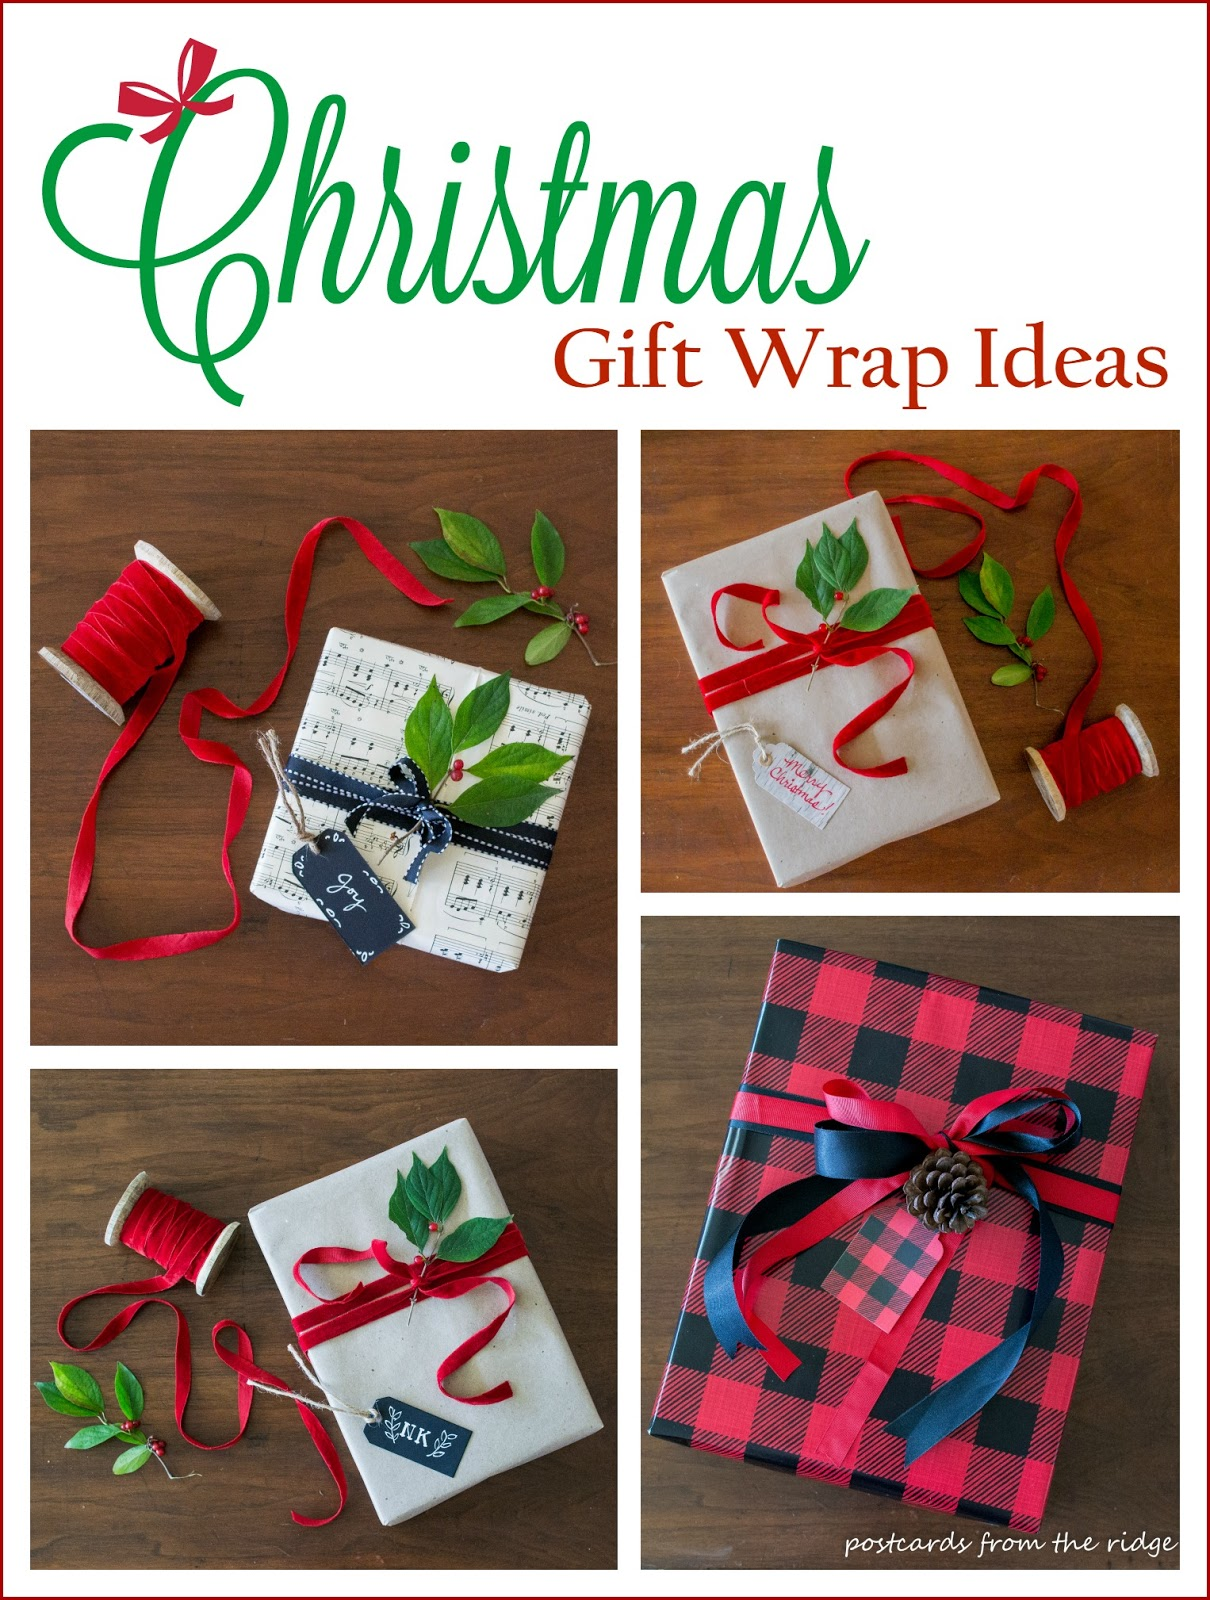 Creative Ways To Wrap Gift Cards For Christmas ✓ The Best Christmas ...